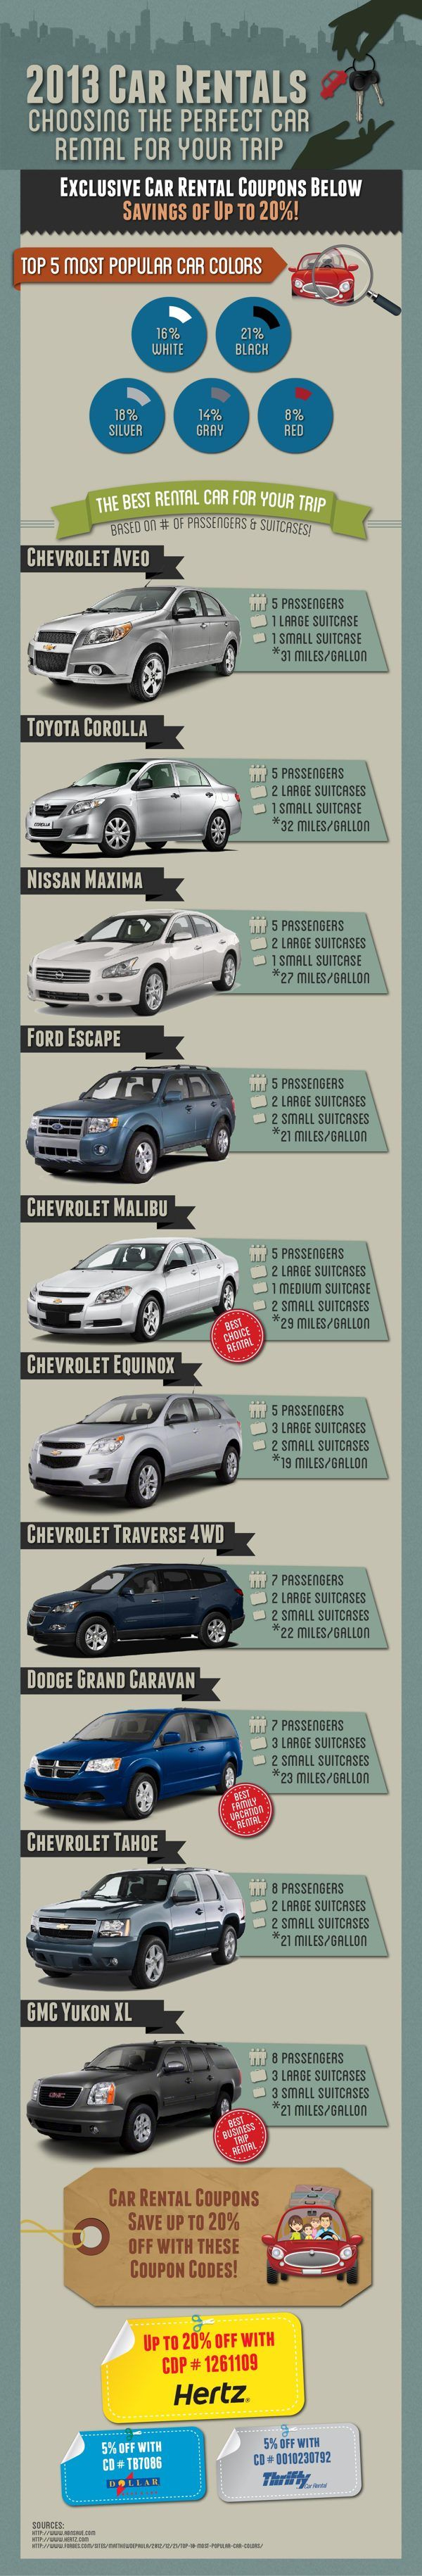 2013 car rentals pinfographics